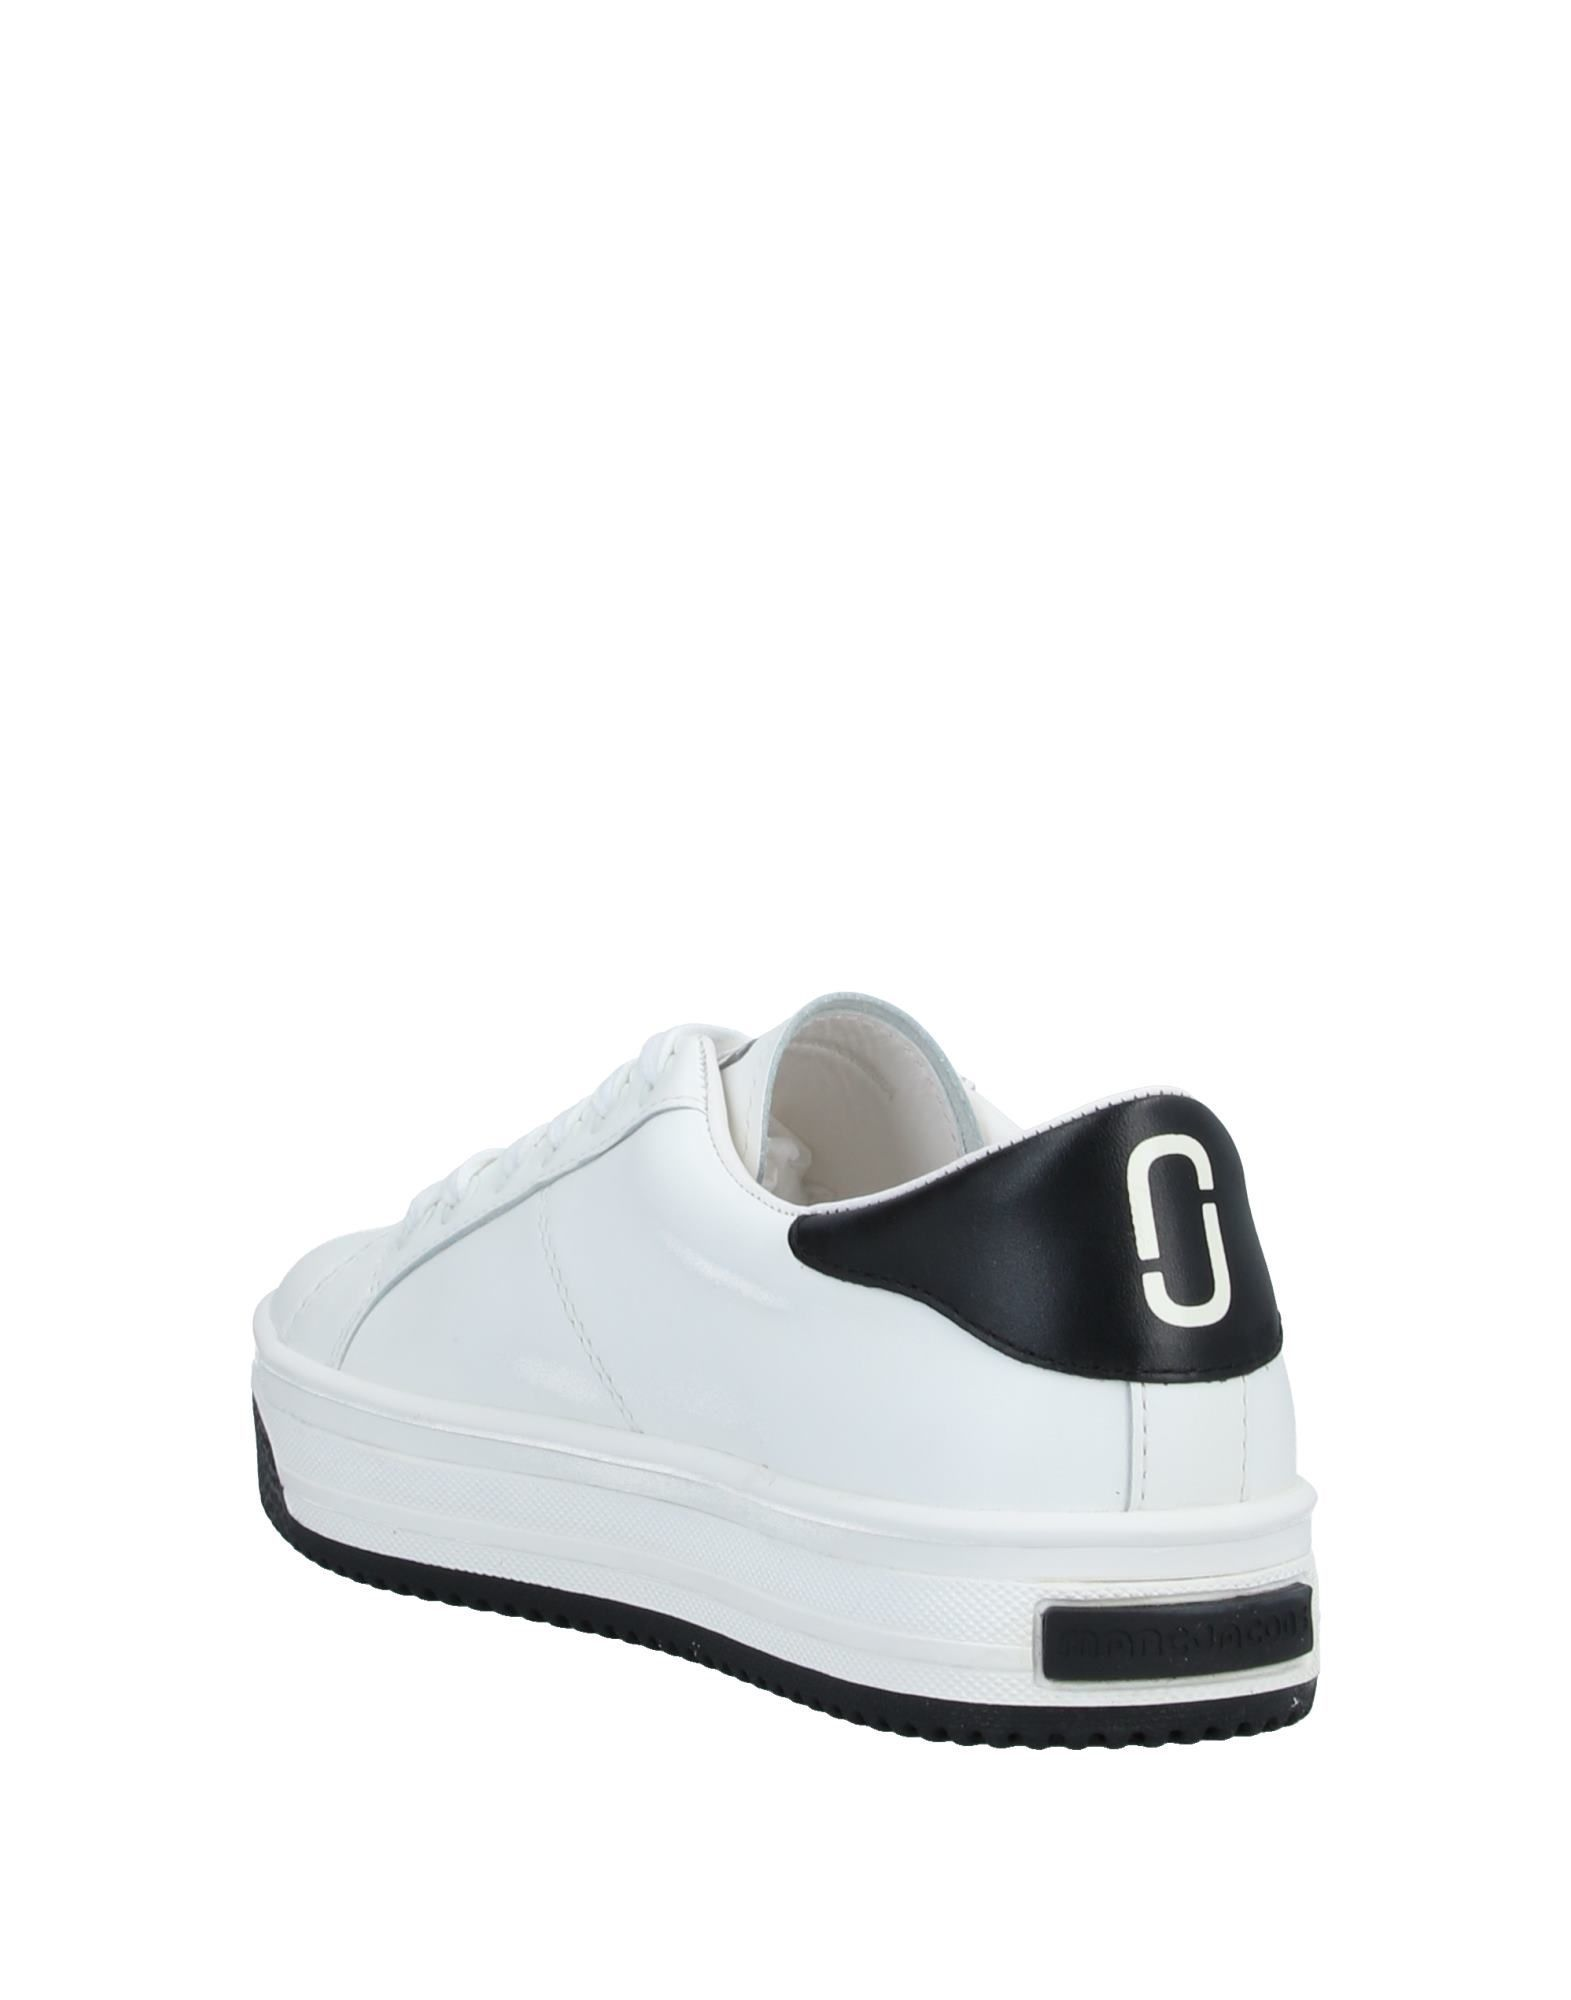 Marc Jacobs White Leather Sneakers